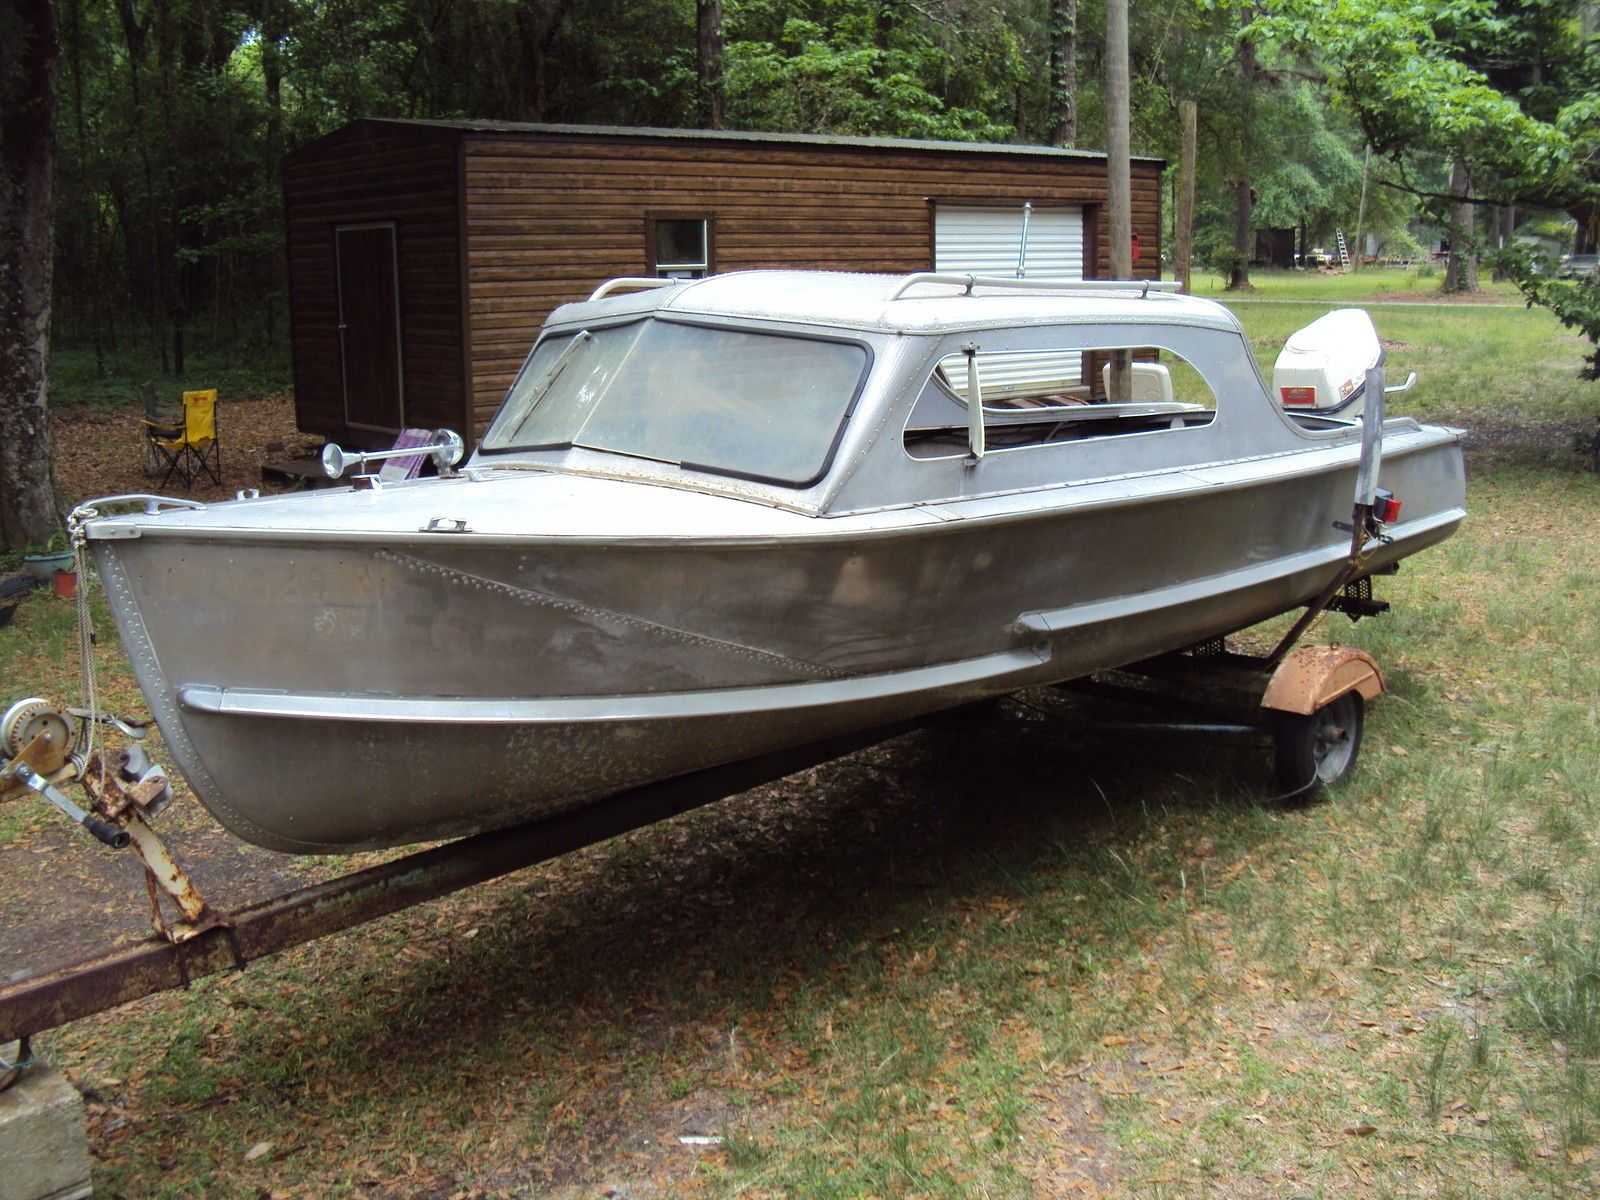 Used boat 2001 misty harbor 16 voyager ss used boats pinterest boating